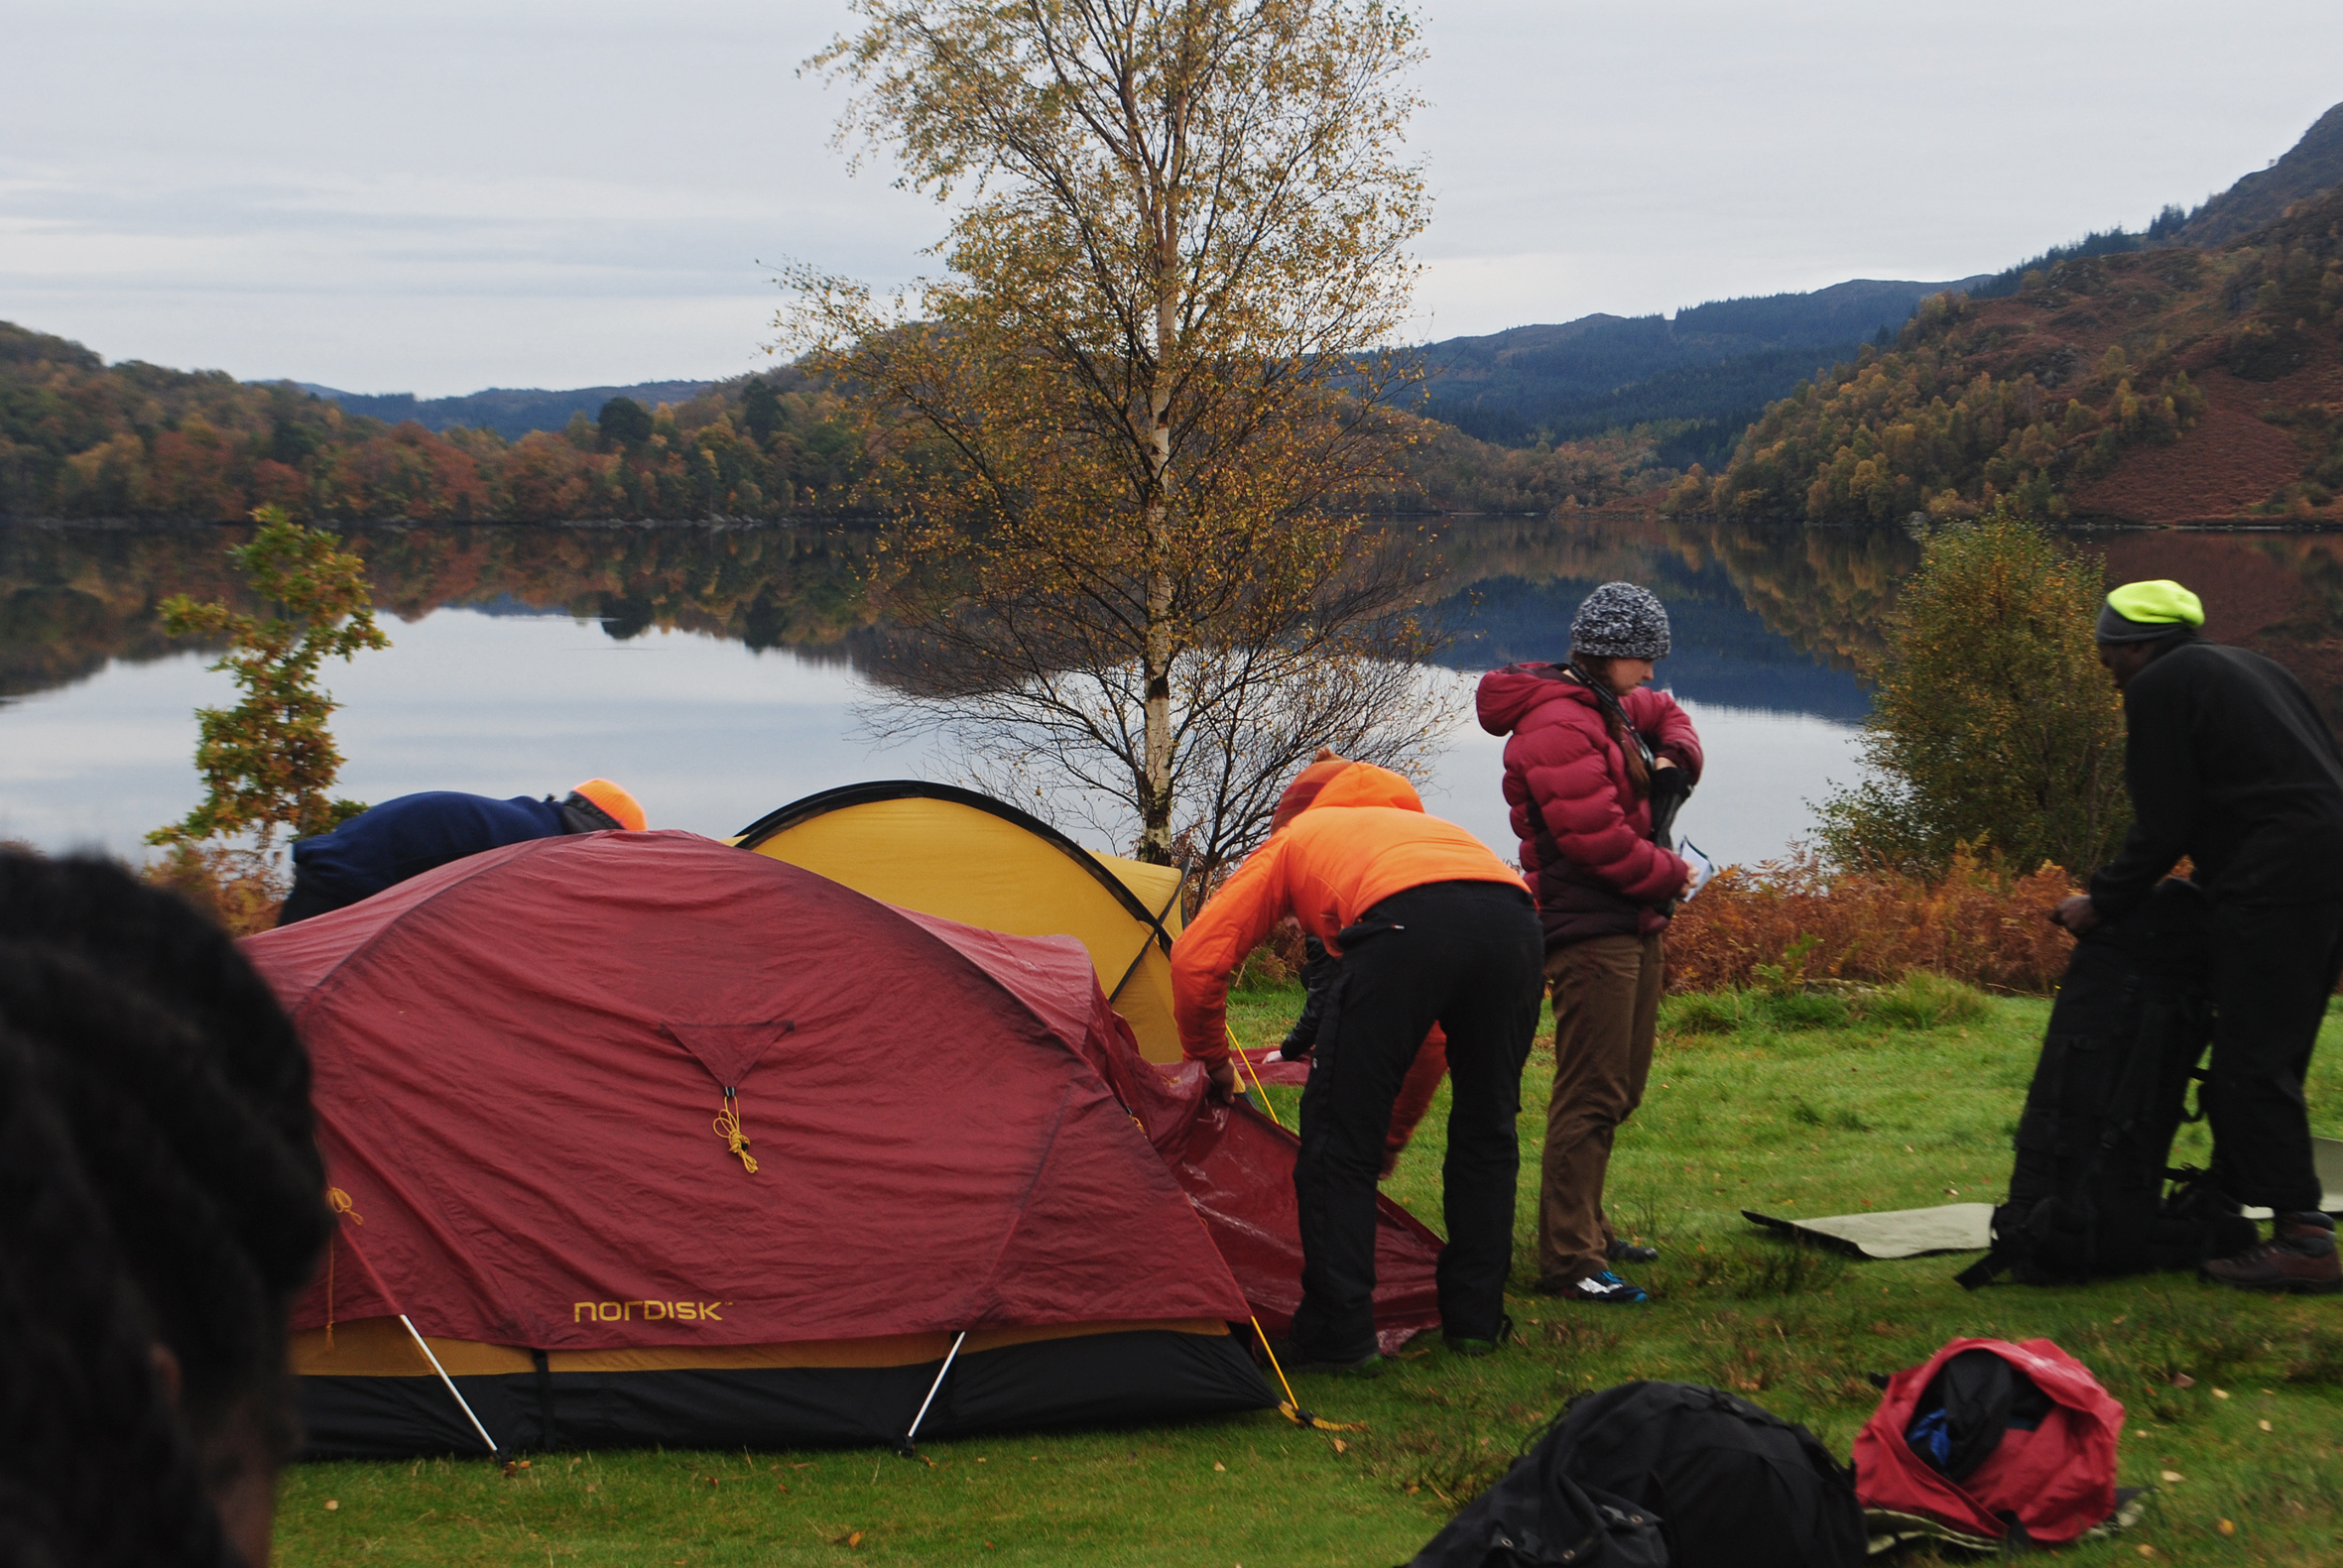 The young carers are setting up camp on the shores of a loch